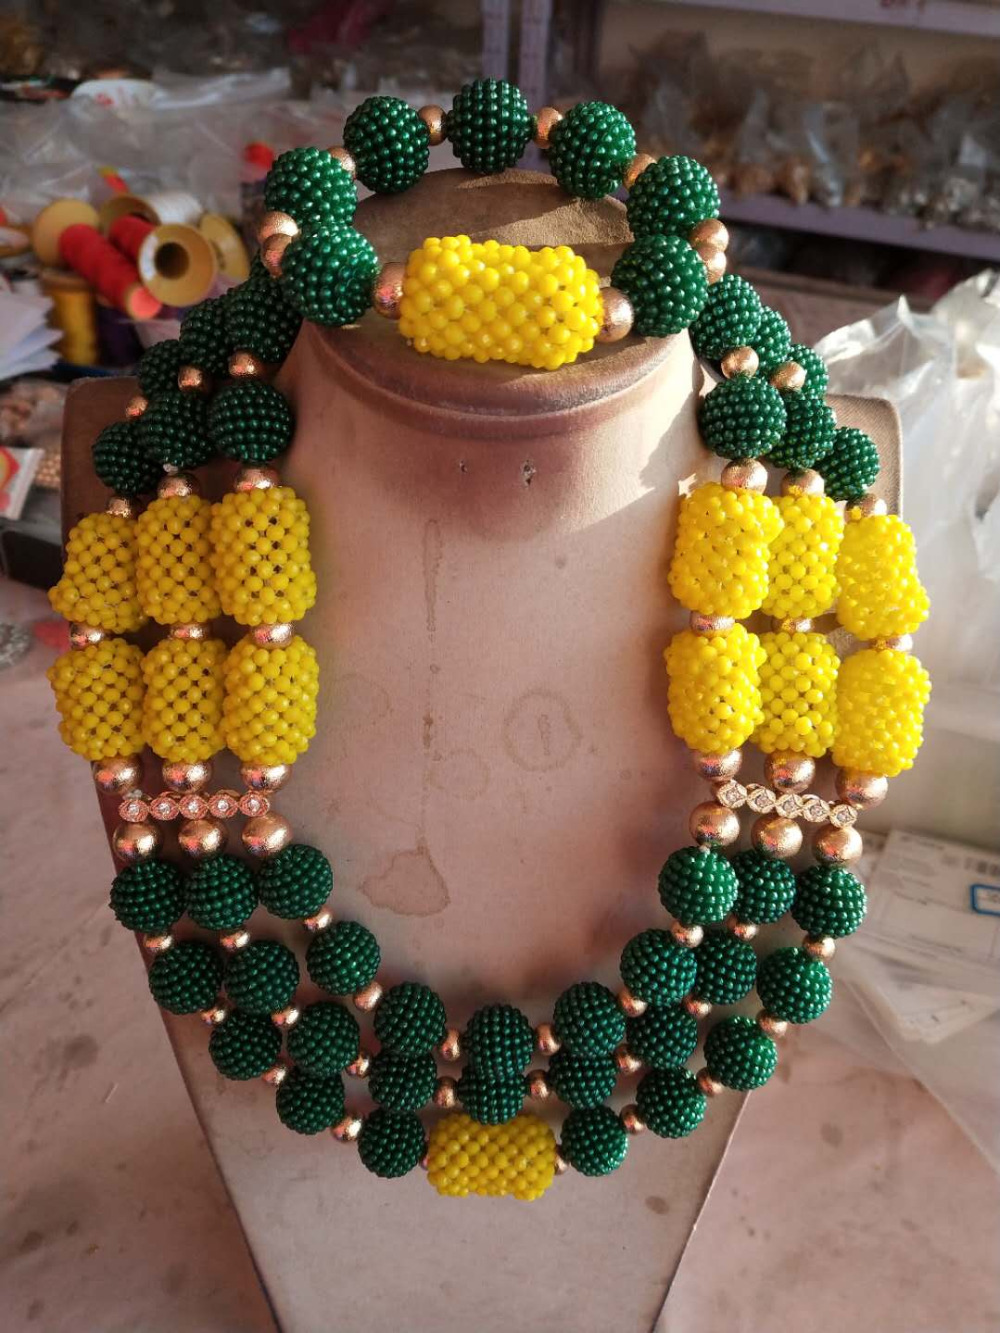 2018 New Necklaces Set Yellow and Green Crystal Beads Ball Necklace Bracelet Earring Set The Best Gift Free Shipping HX740 футболка с полной запечаткой мужская printio dota 2 lina on fire page 1